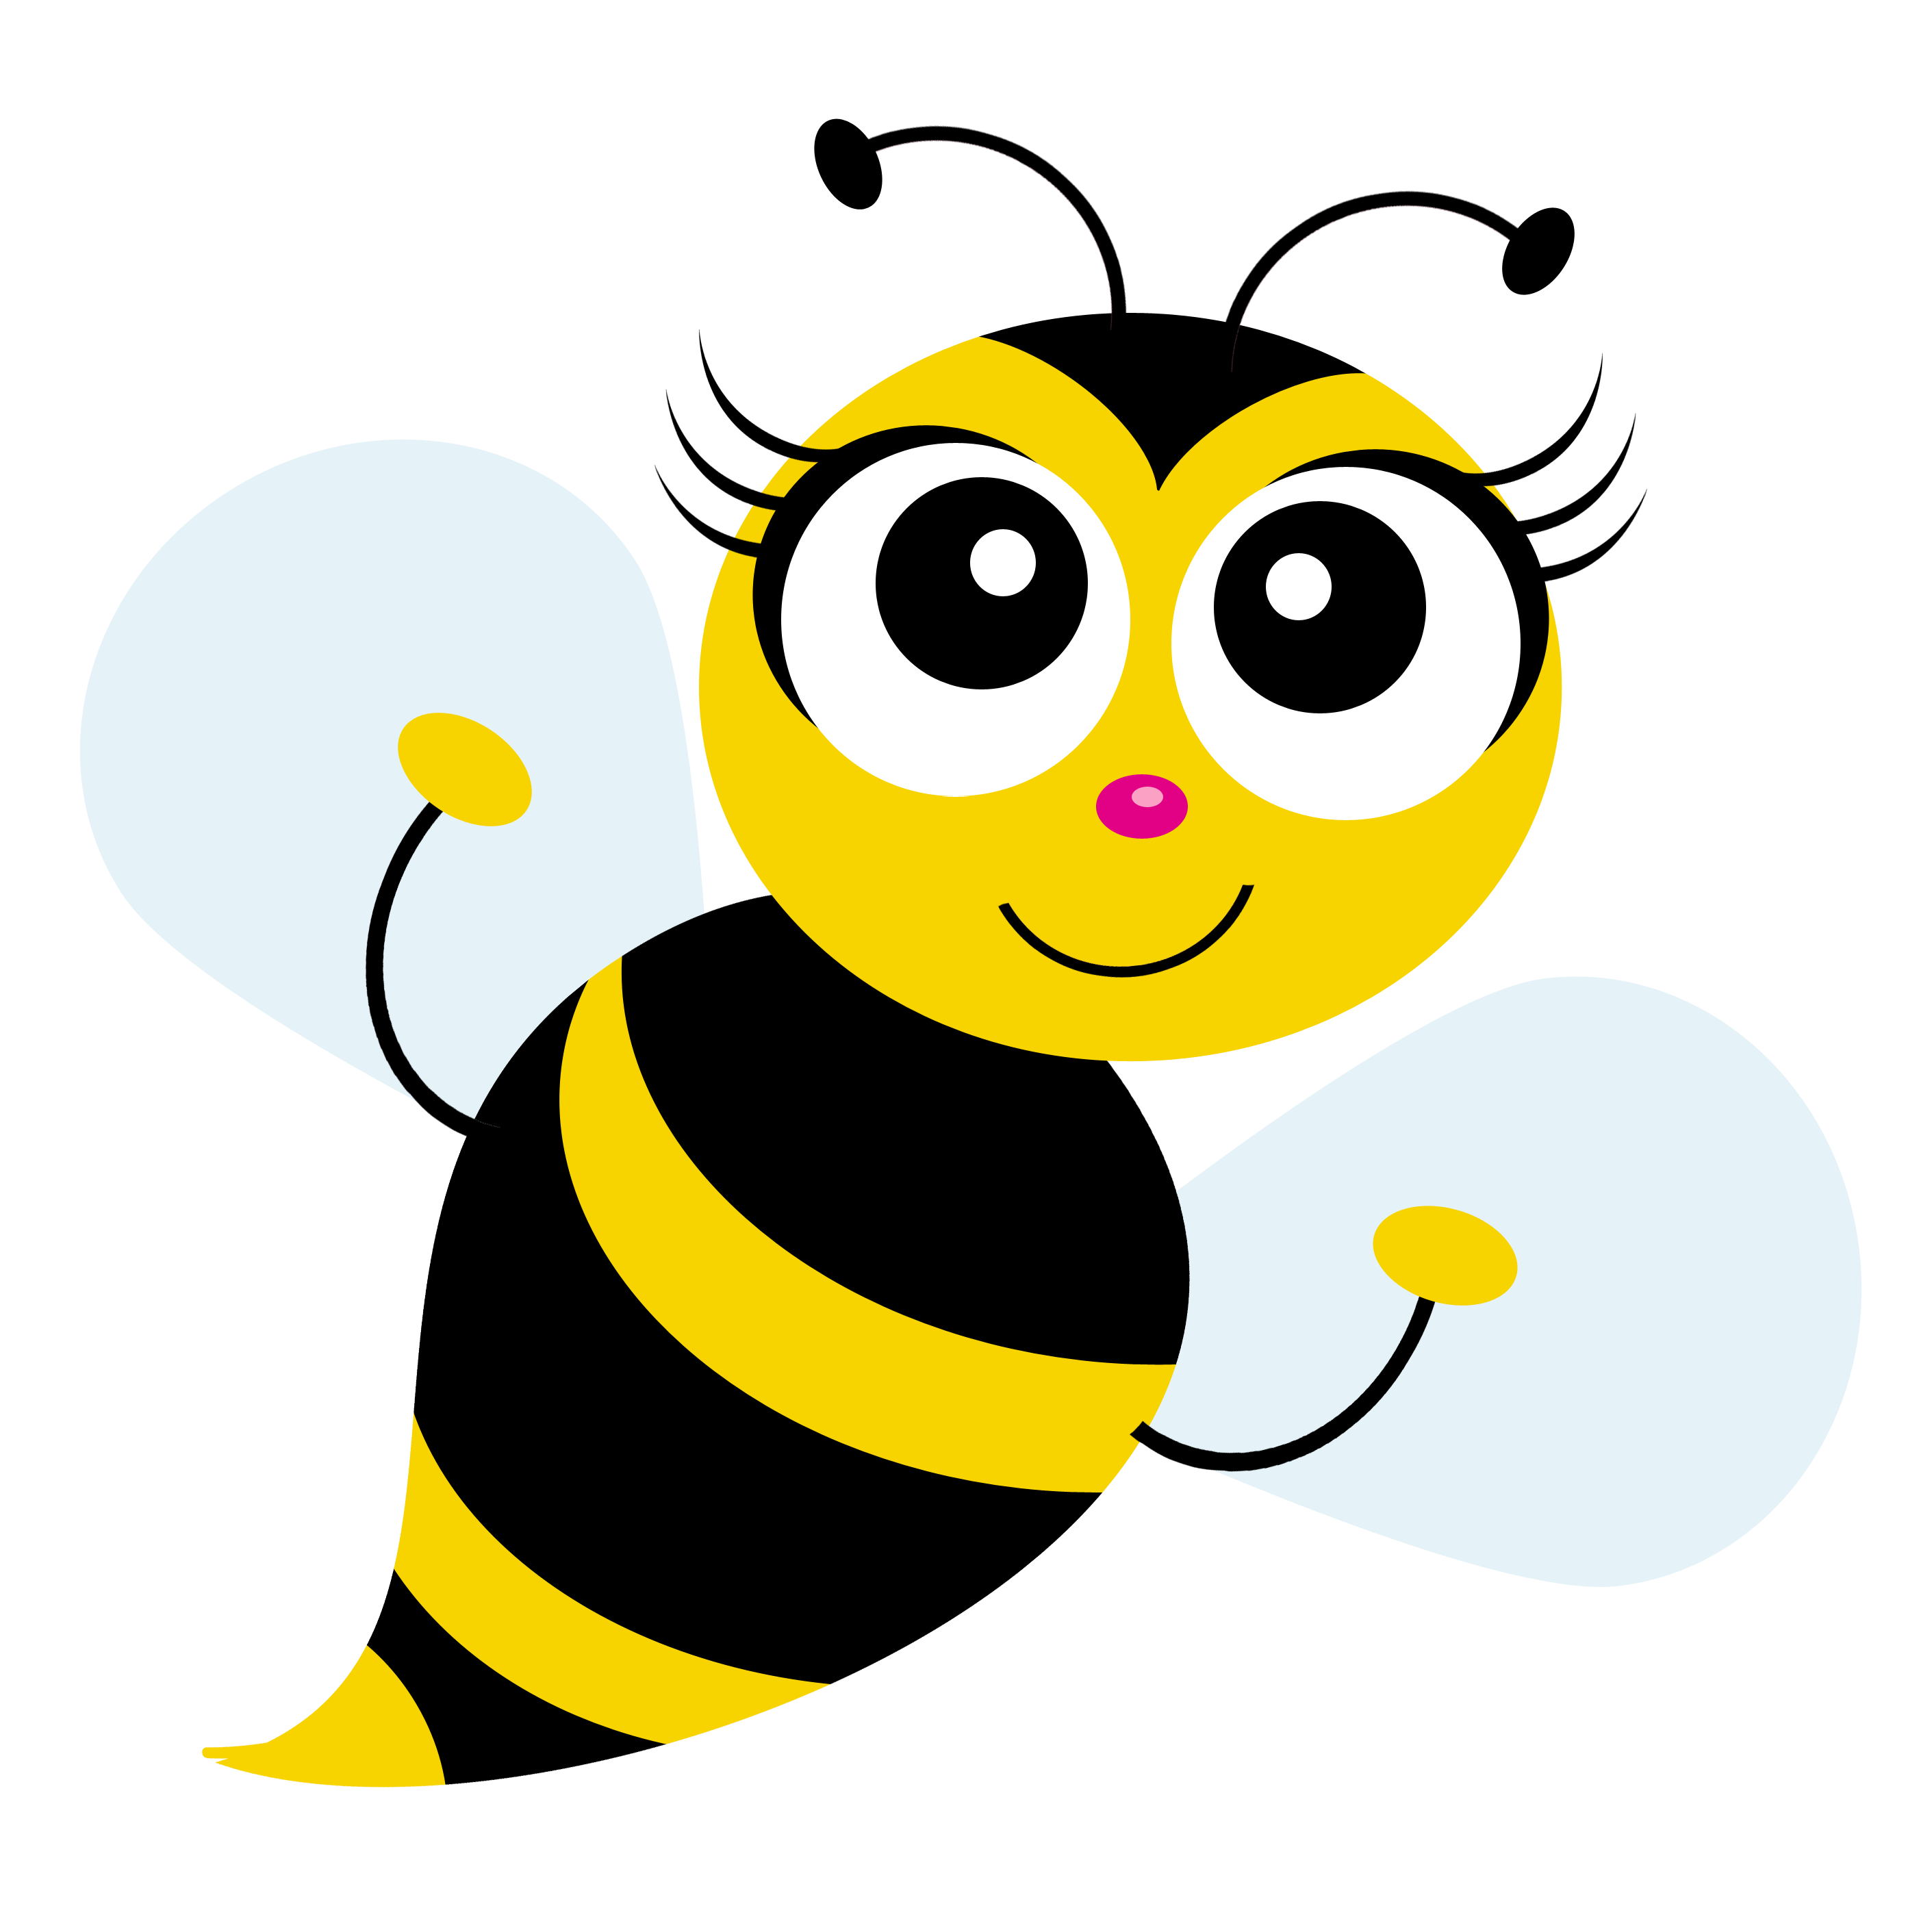 Bee Png - Download Free Bee Images image #45402